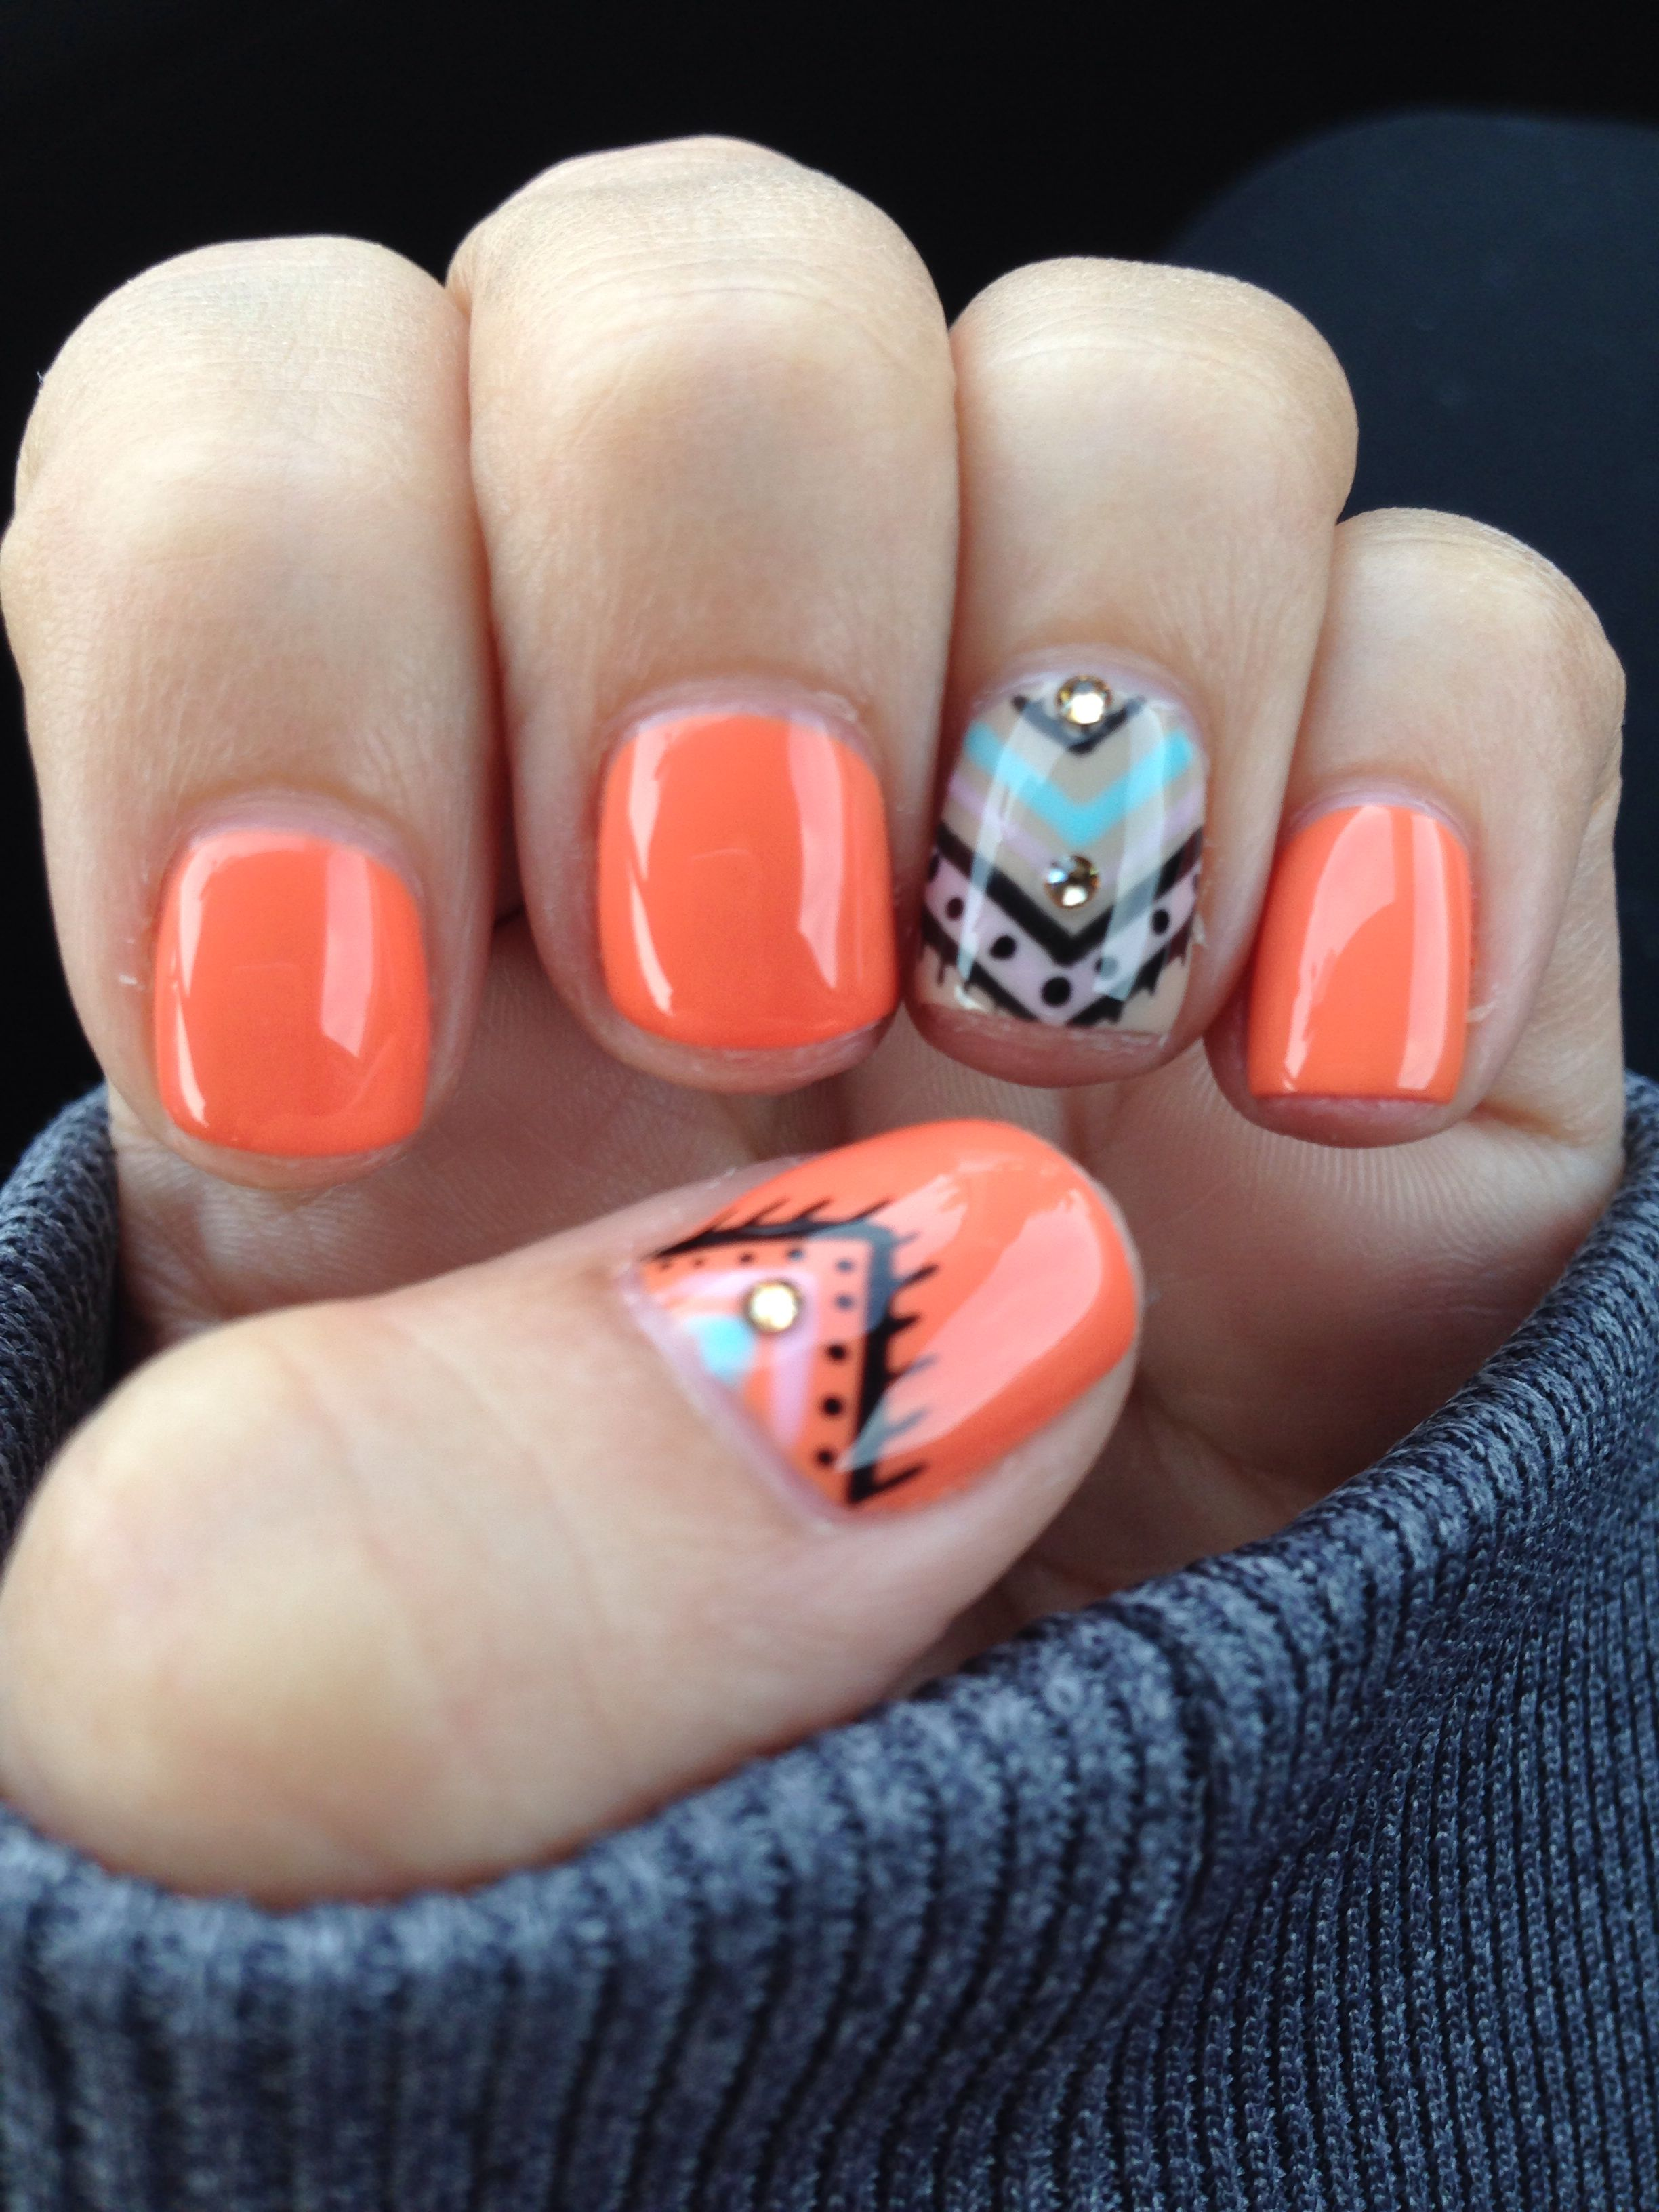 Opi gel manicure nail art colors where did suzi\'s man-go and did you ...